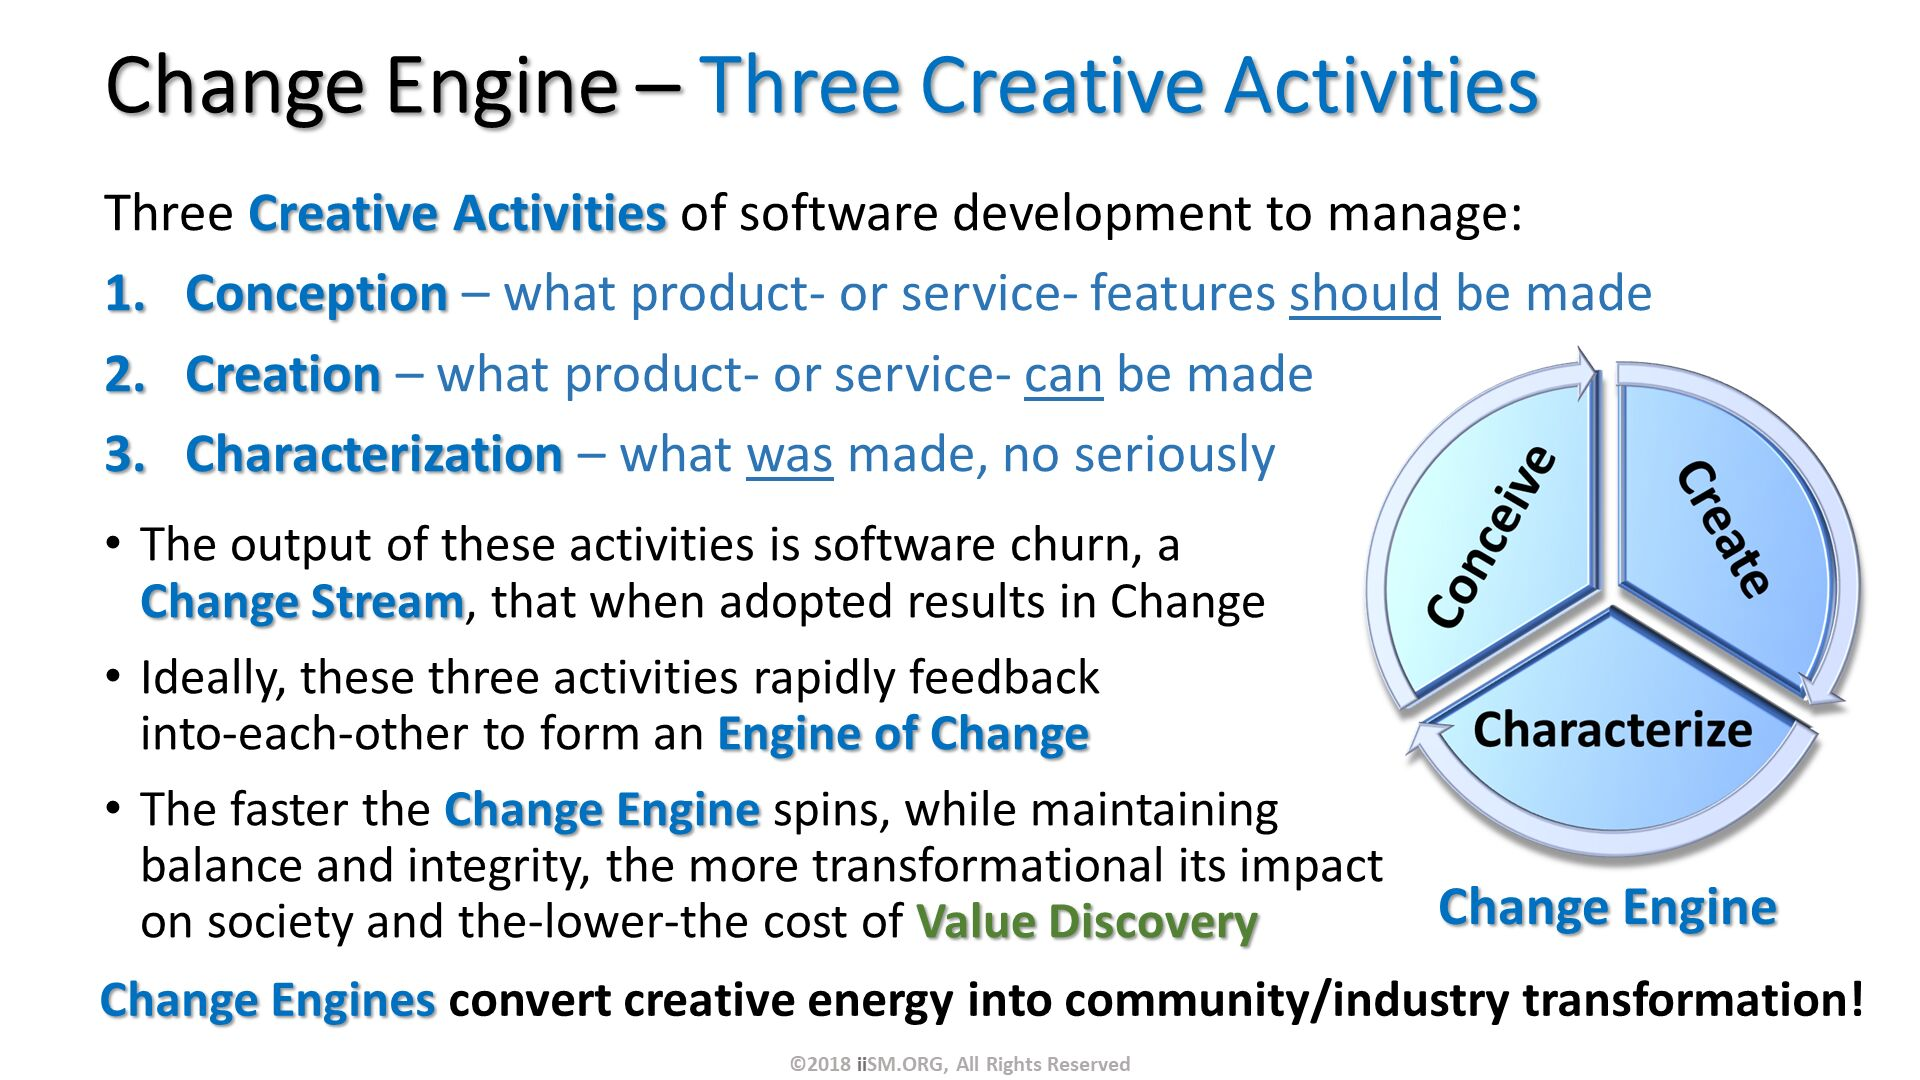 Change Engine – Three Creative Activities. Three Creative Activities of software development to manage: Conception – what product- or service- features should be made Creation – what product- or service- can be made Characterization – what was made, no seriously. The output of these activities is software churn, a Change Stream, that when adopted results in Change Ideally, these three activities rapidly feedback into-each-other to form an Engine of Change The faster the Change Engine spins, while maintaining balance and integrity, the more transformational its impact on society and the-lower-the cost of Value Discovery. ©2018 iiSM.ORG, All Rights Reserved. Change Engines convert creative energy into community/industry transformation!  .